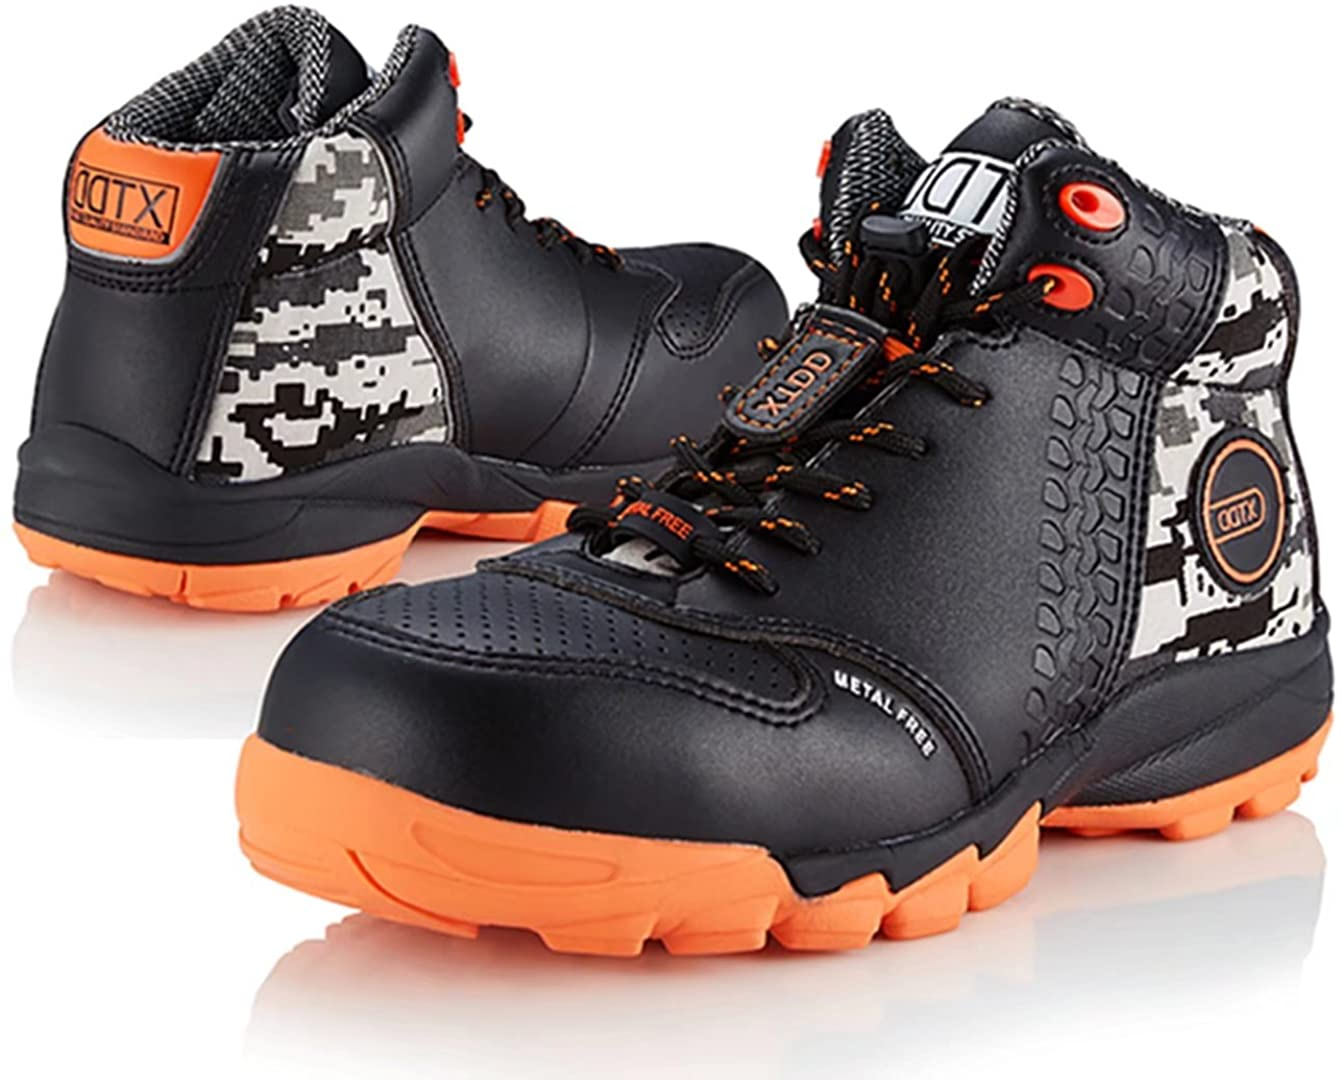 DDTX Men's Lightweight Work Boots have anti-static features for your protection.